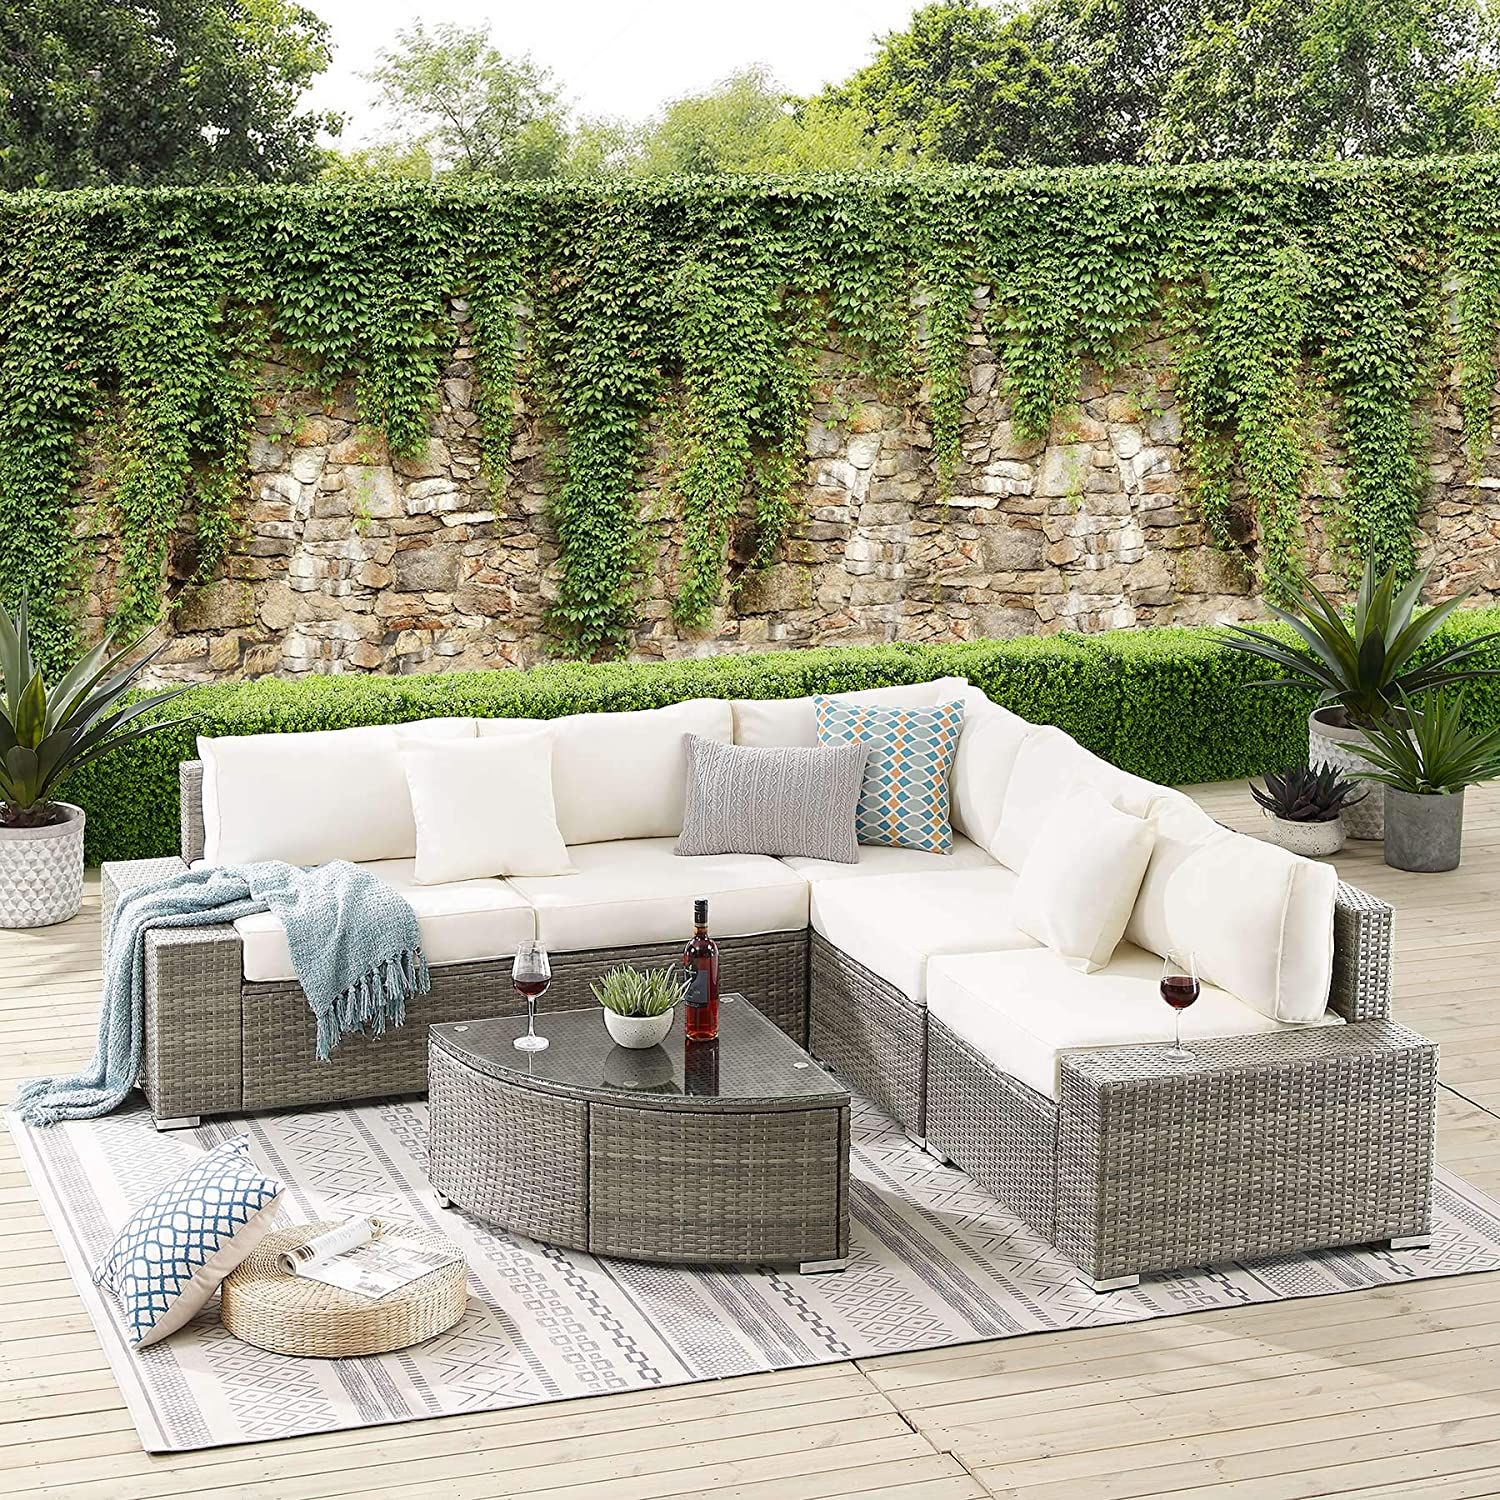 tribesigns 6 pieces outdoor patio furniture set large wicker sectional sofa set patio conversation set rattan couch with cushions and glass table for